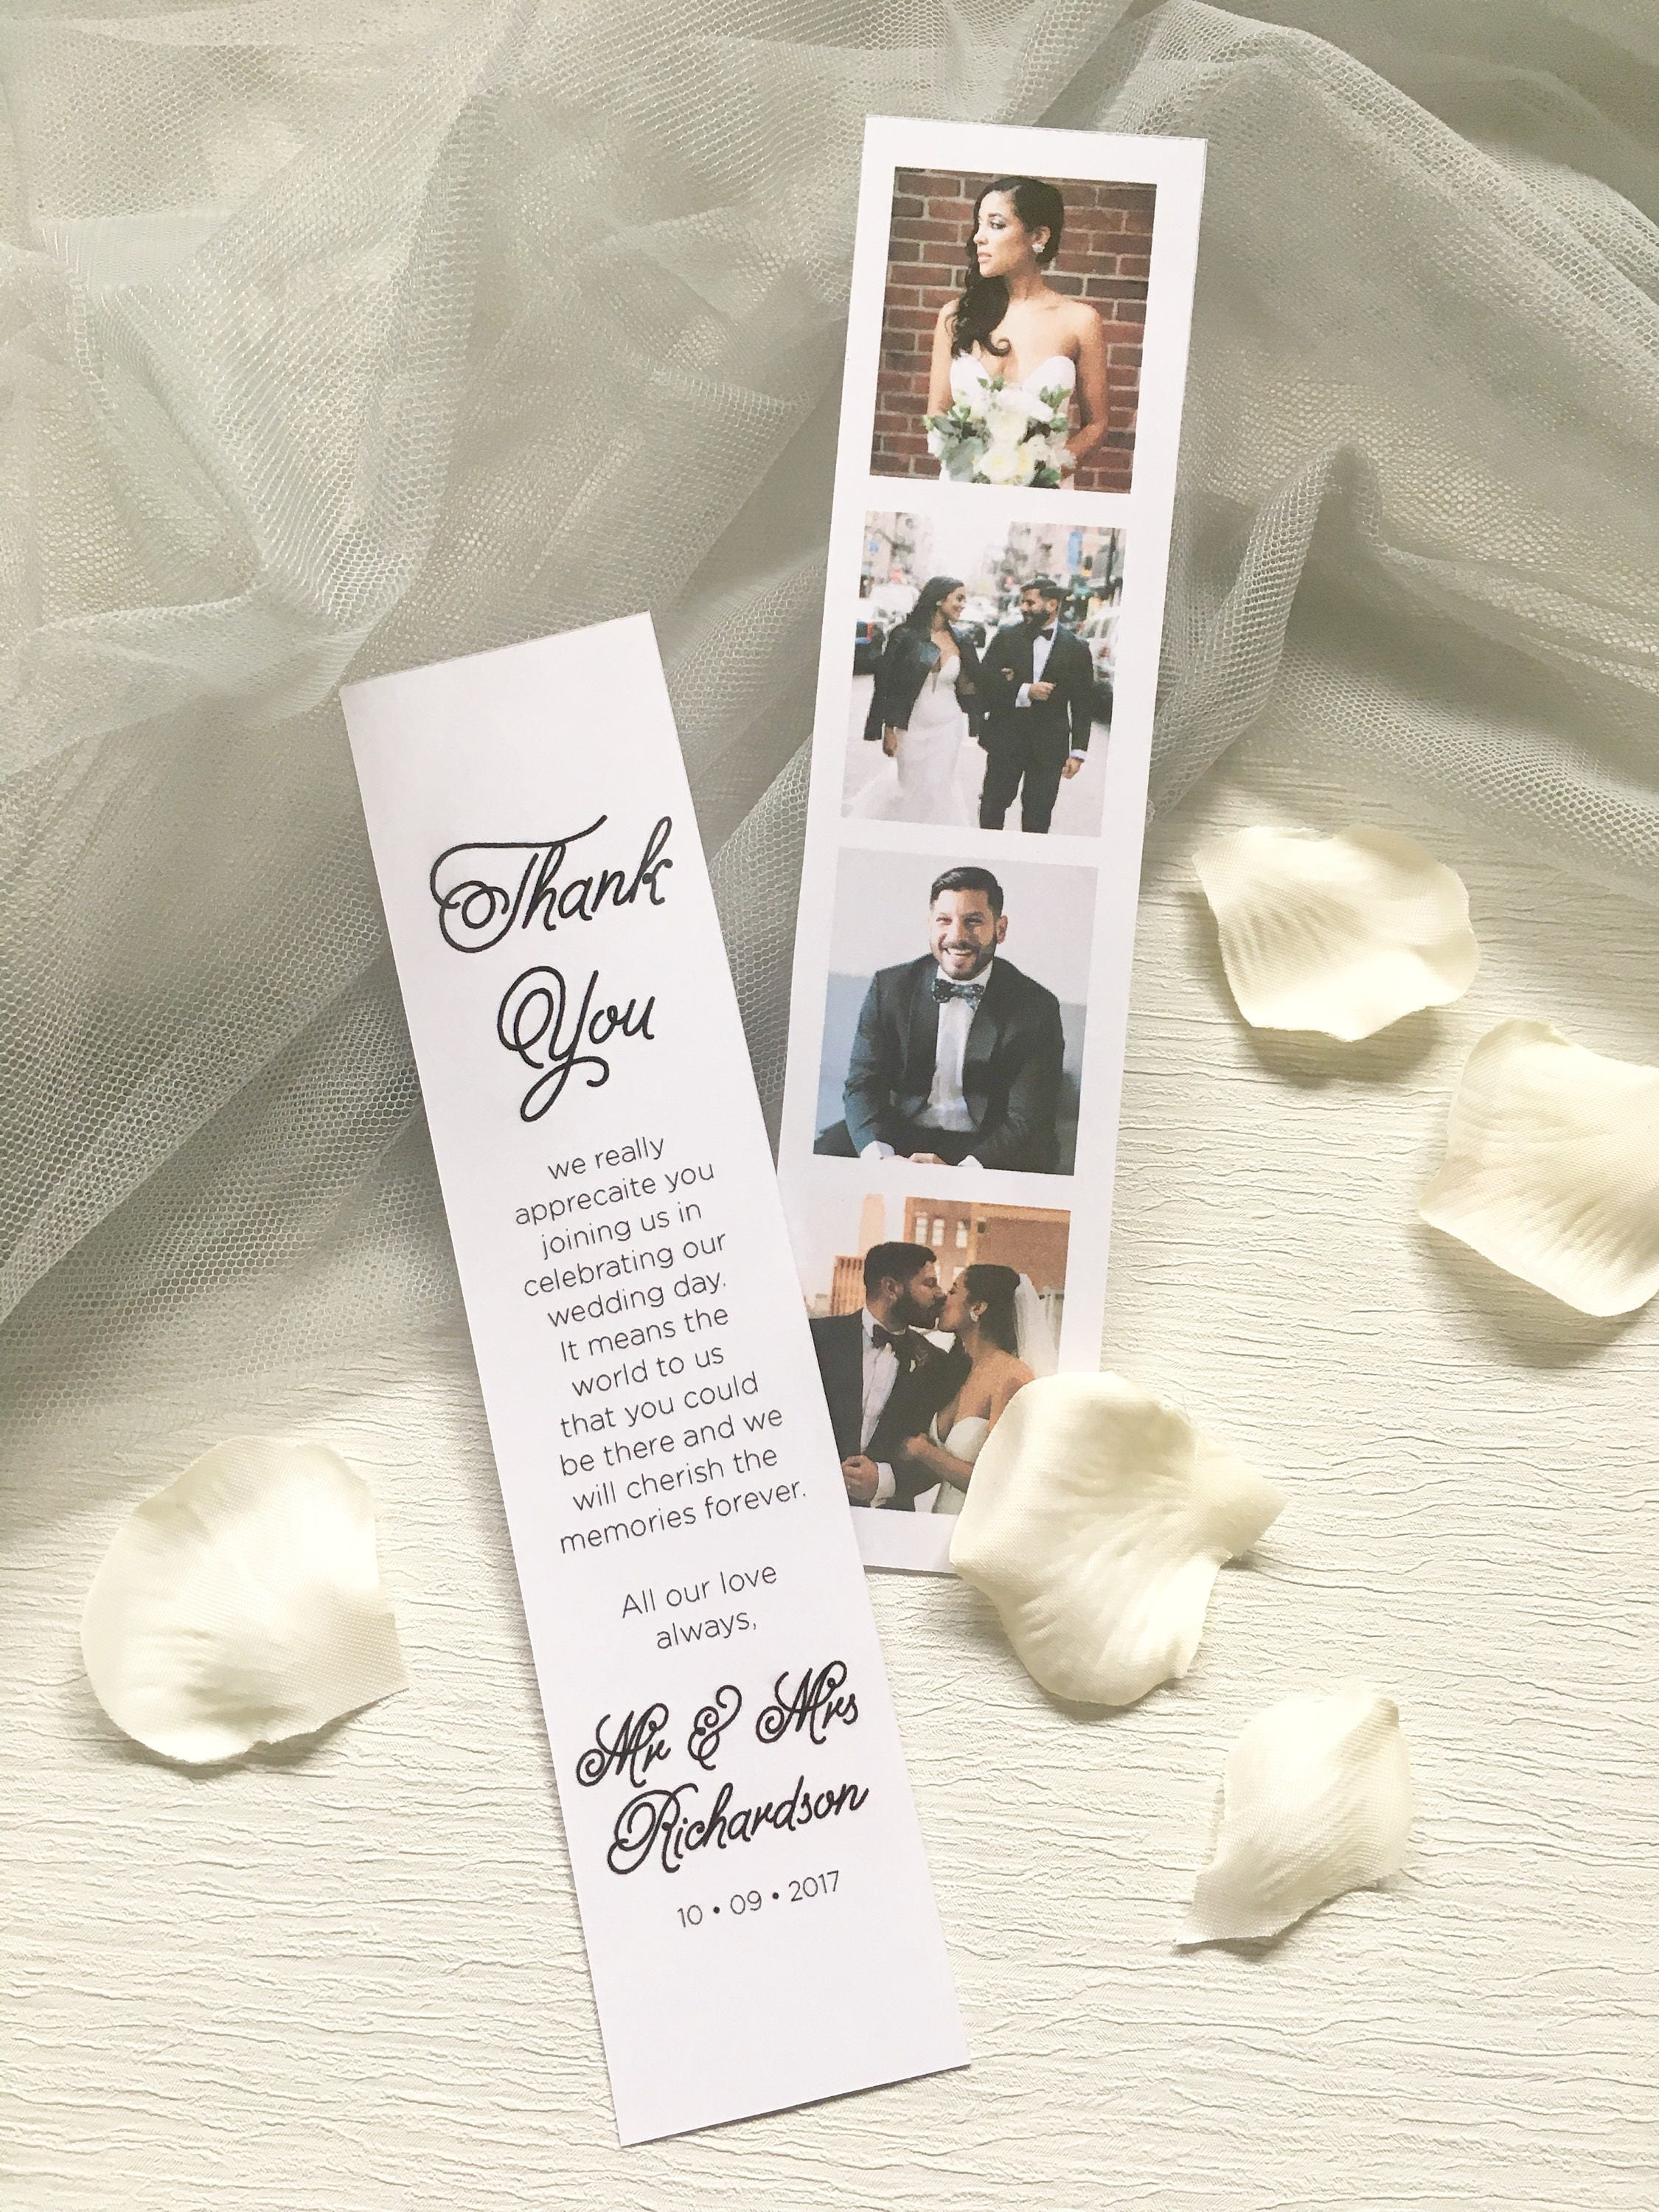 Olivia Polaroid Photo Booth Wedding Thank You Card With Personalised